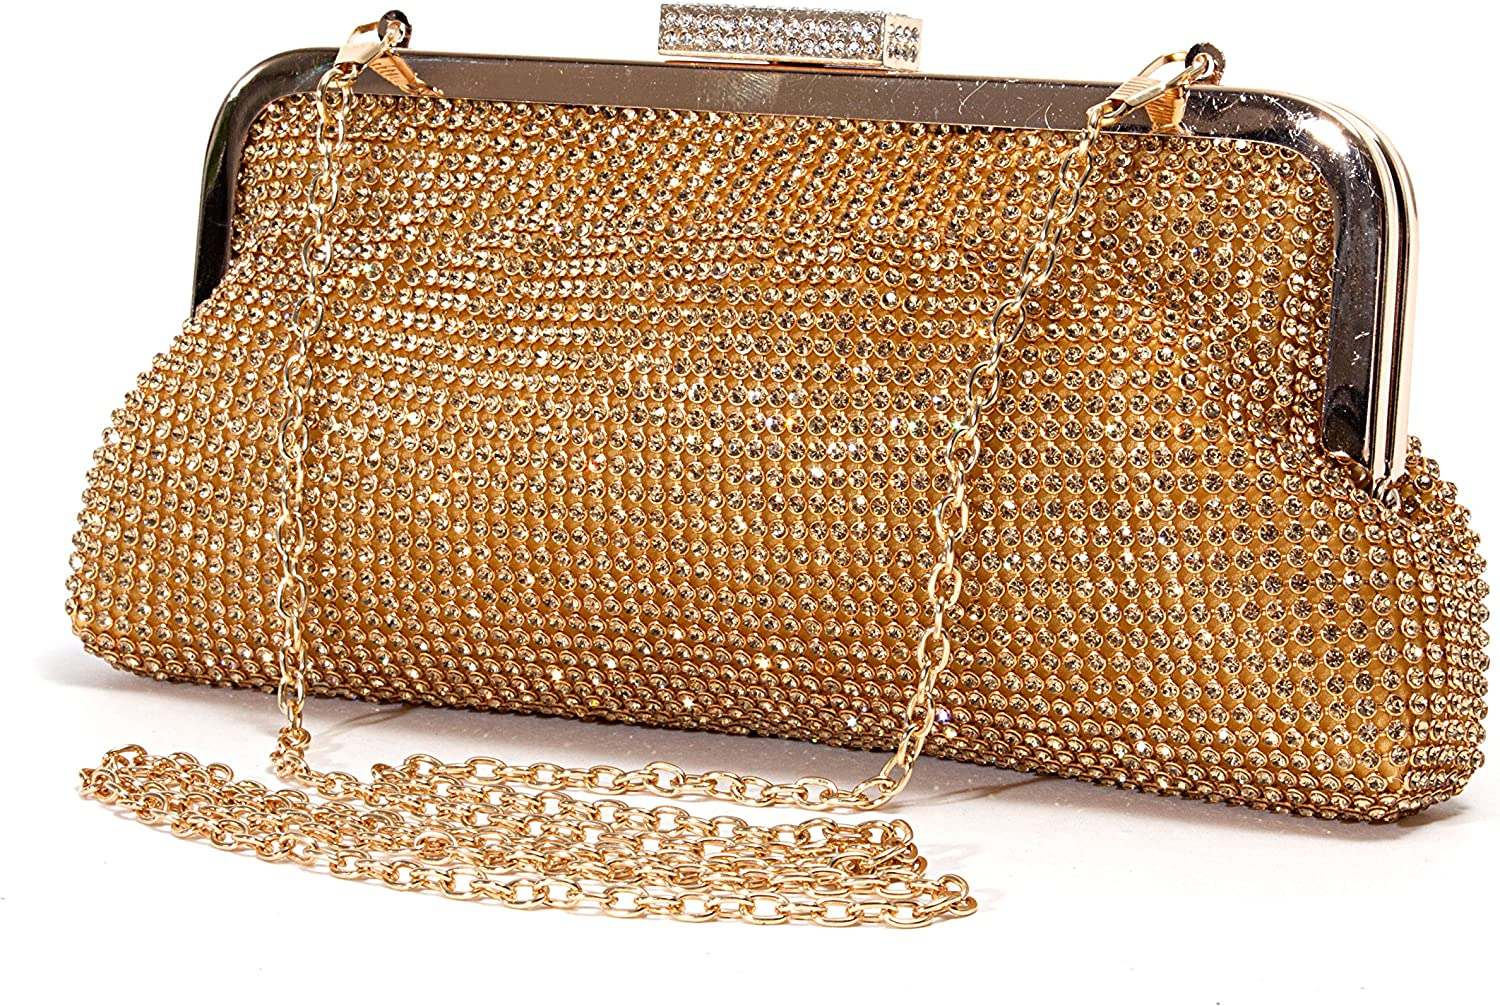 Bag 2015-7 Lady Couture Soft Rhinestone Embellished Clutch Bag by